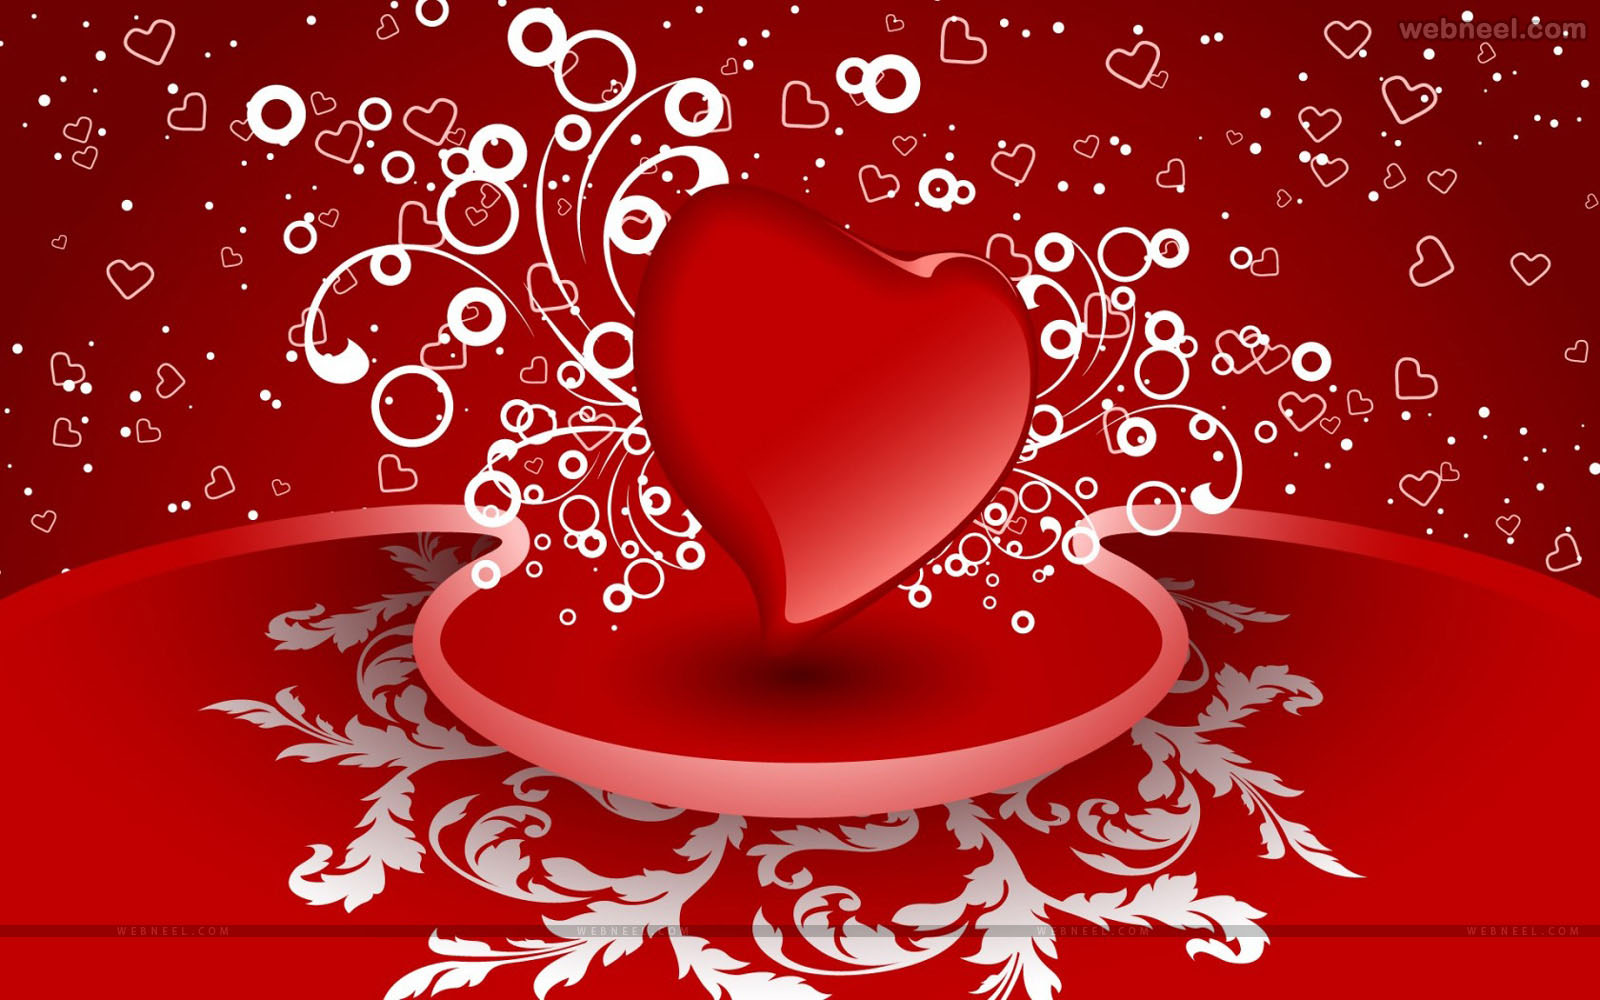 Red Heart Romantic Valentine Wallpaper Responsive